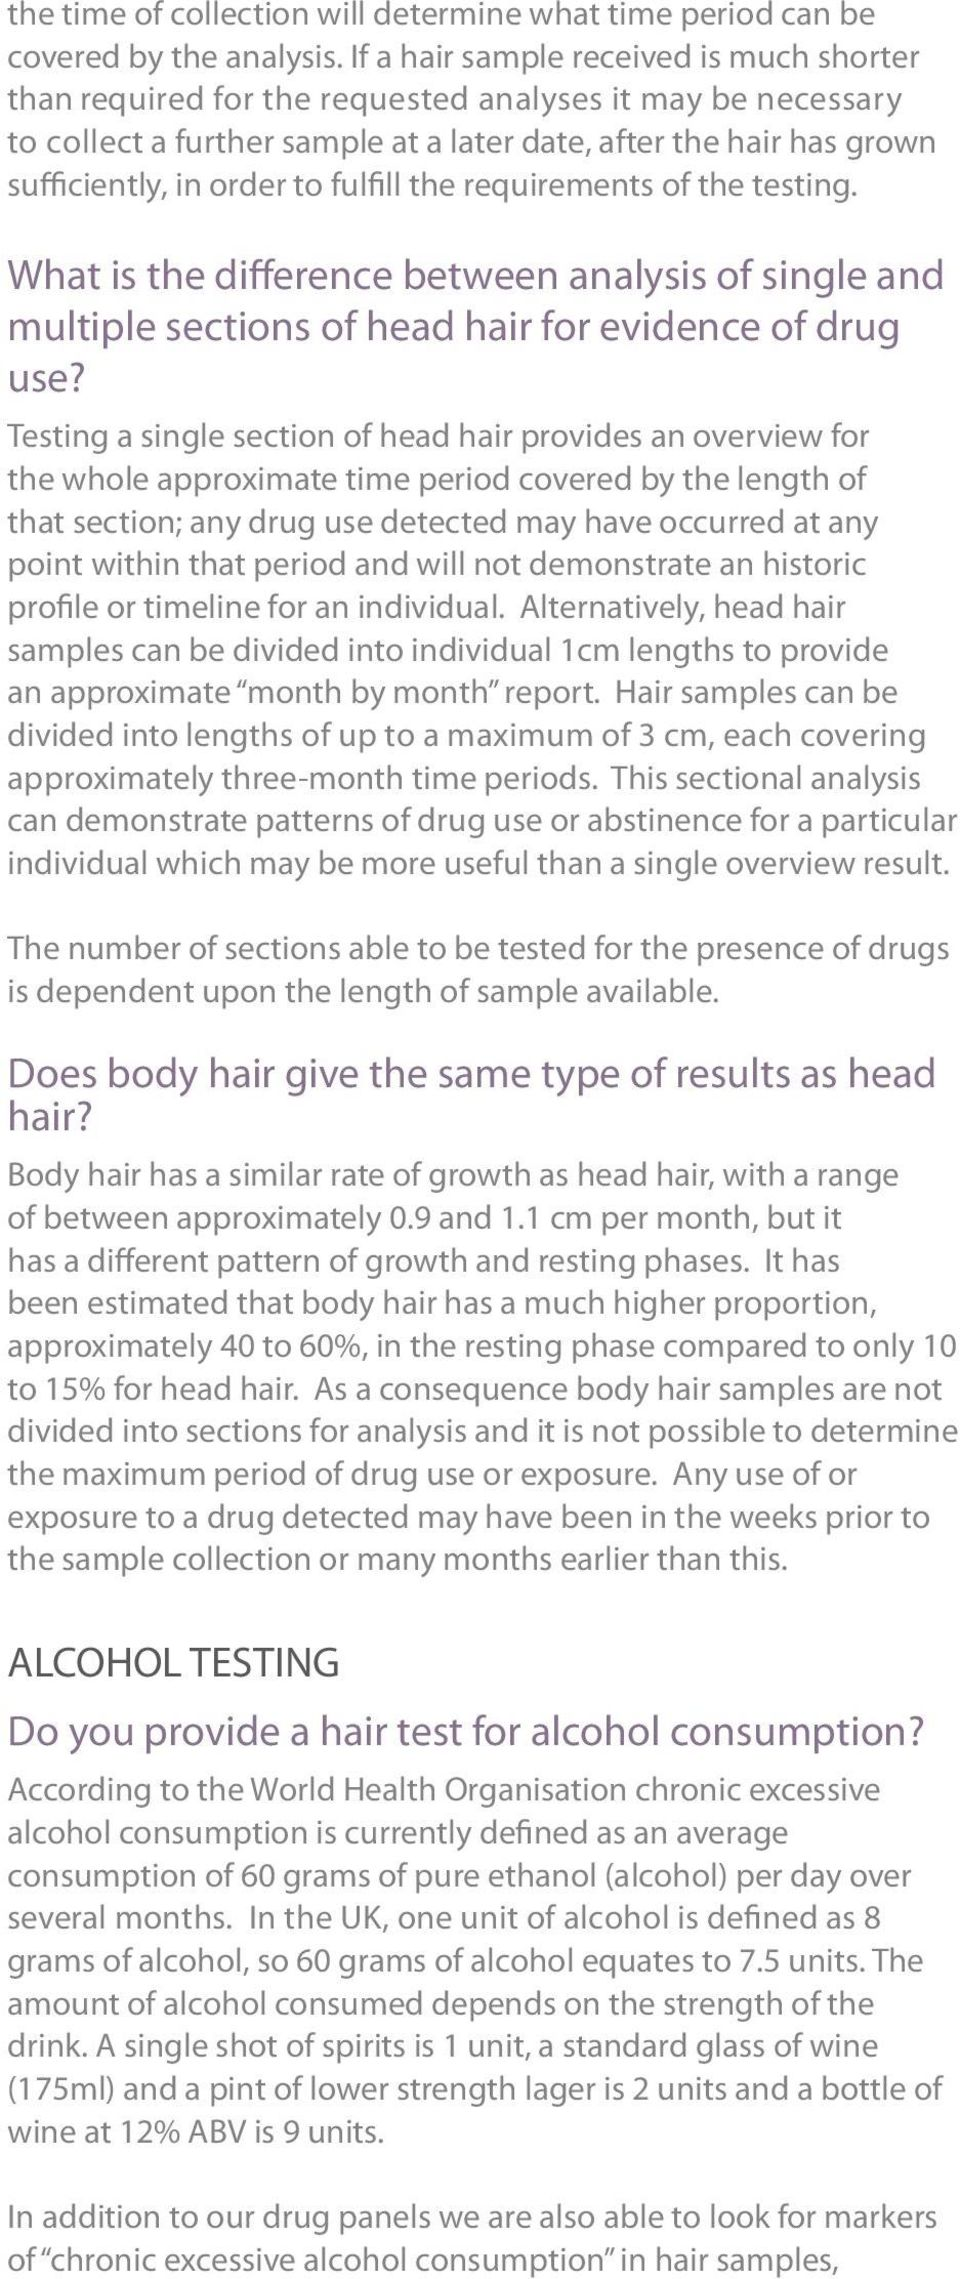 fulfill the requirements of the testing. What is the difference between analysis of single and multiple sections of head hair for evidence of drug use?